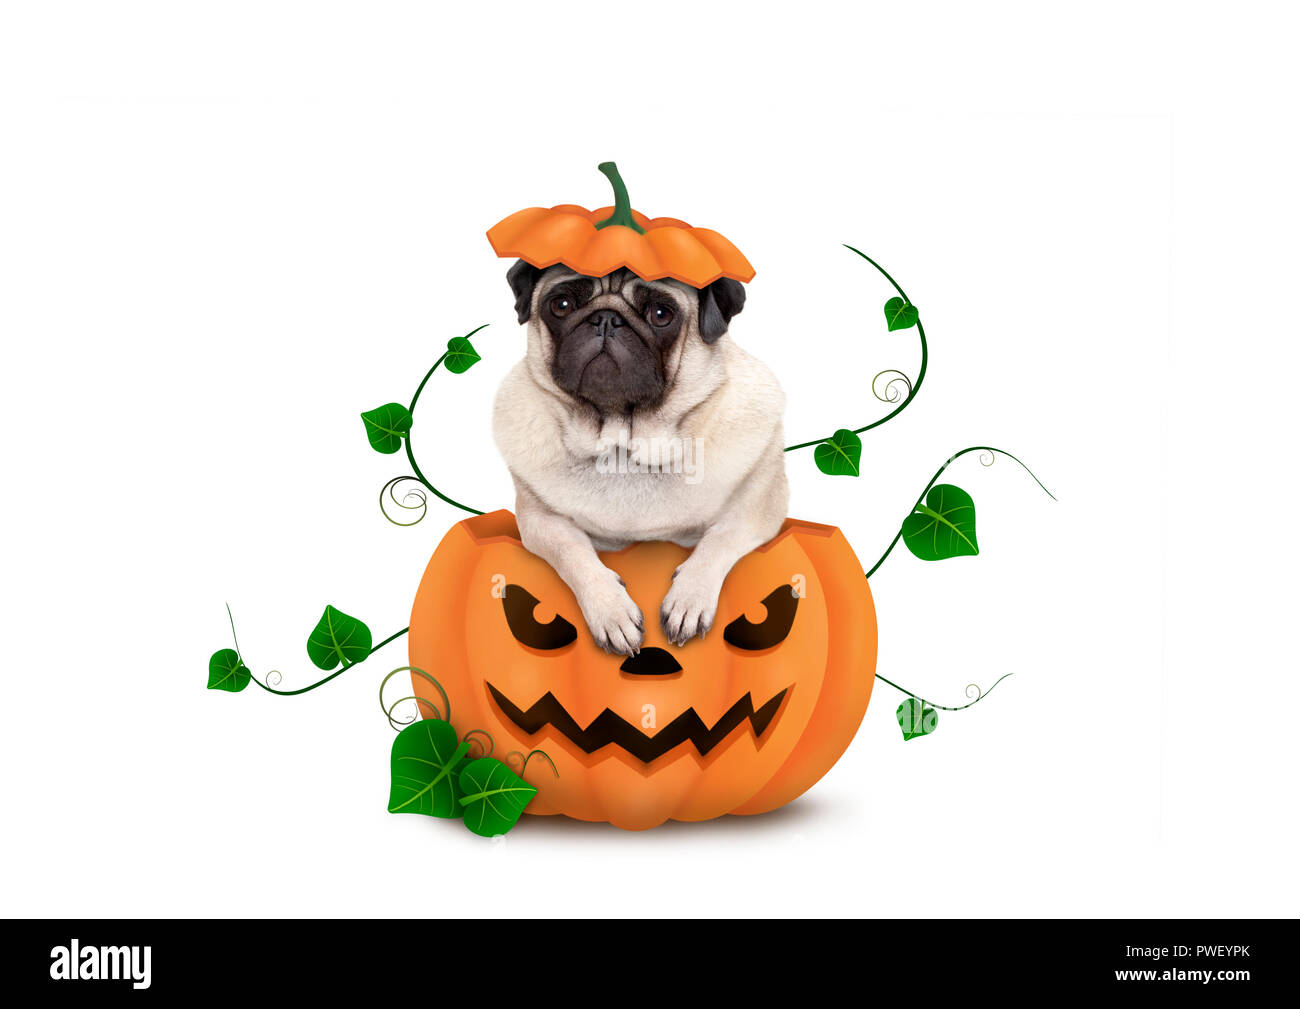 cute Halloween pug puppy dog sitting in carved pumpkin with scary face, wearing lid as hat, isolated on white background Stock Photo